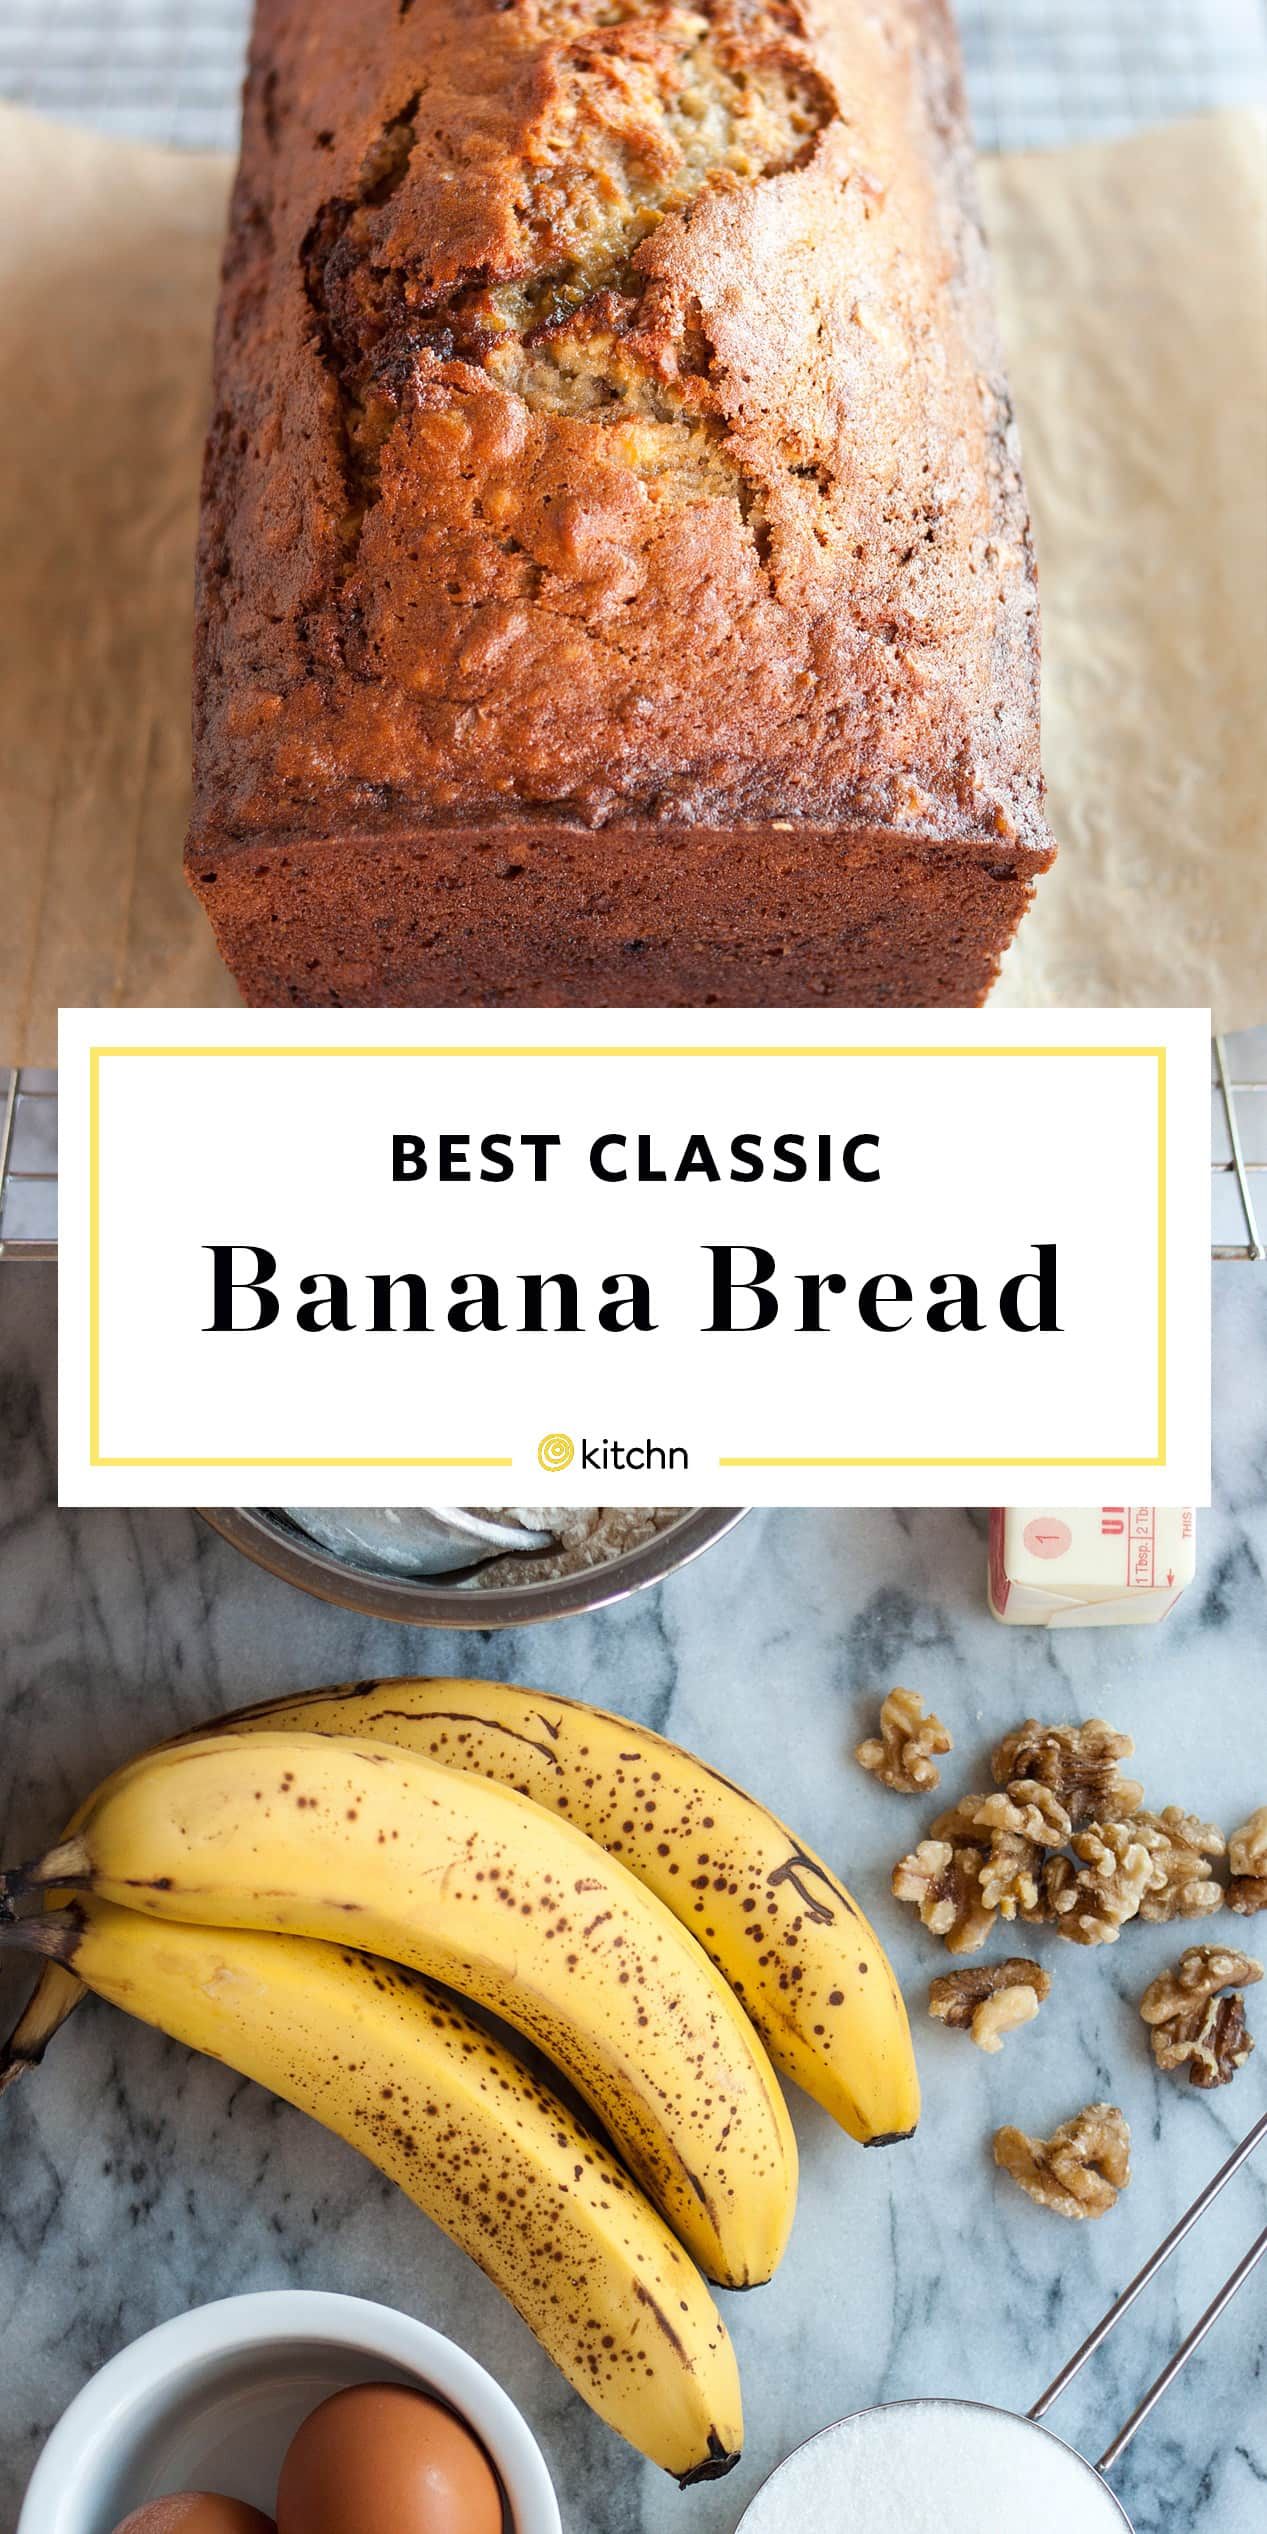 How To Make Banana Bread: The Simplest, Easiest Recipe